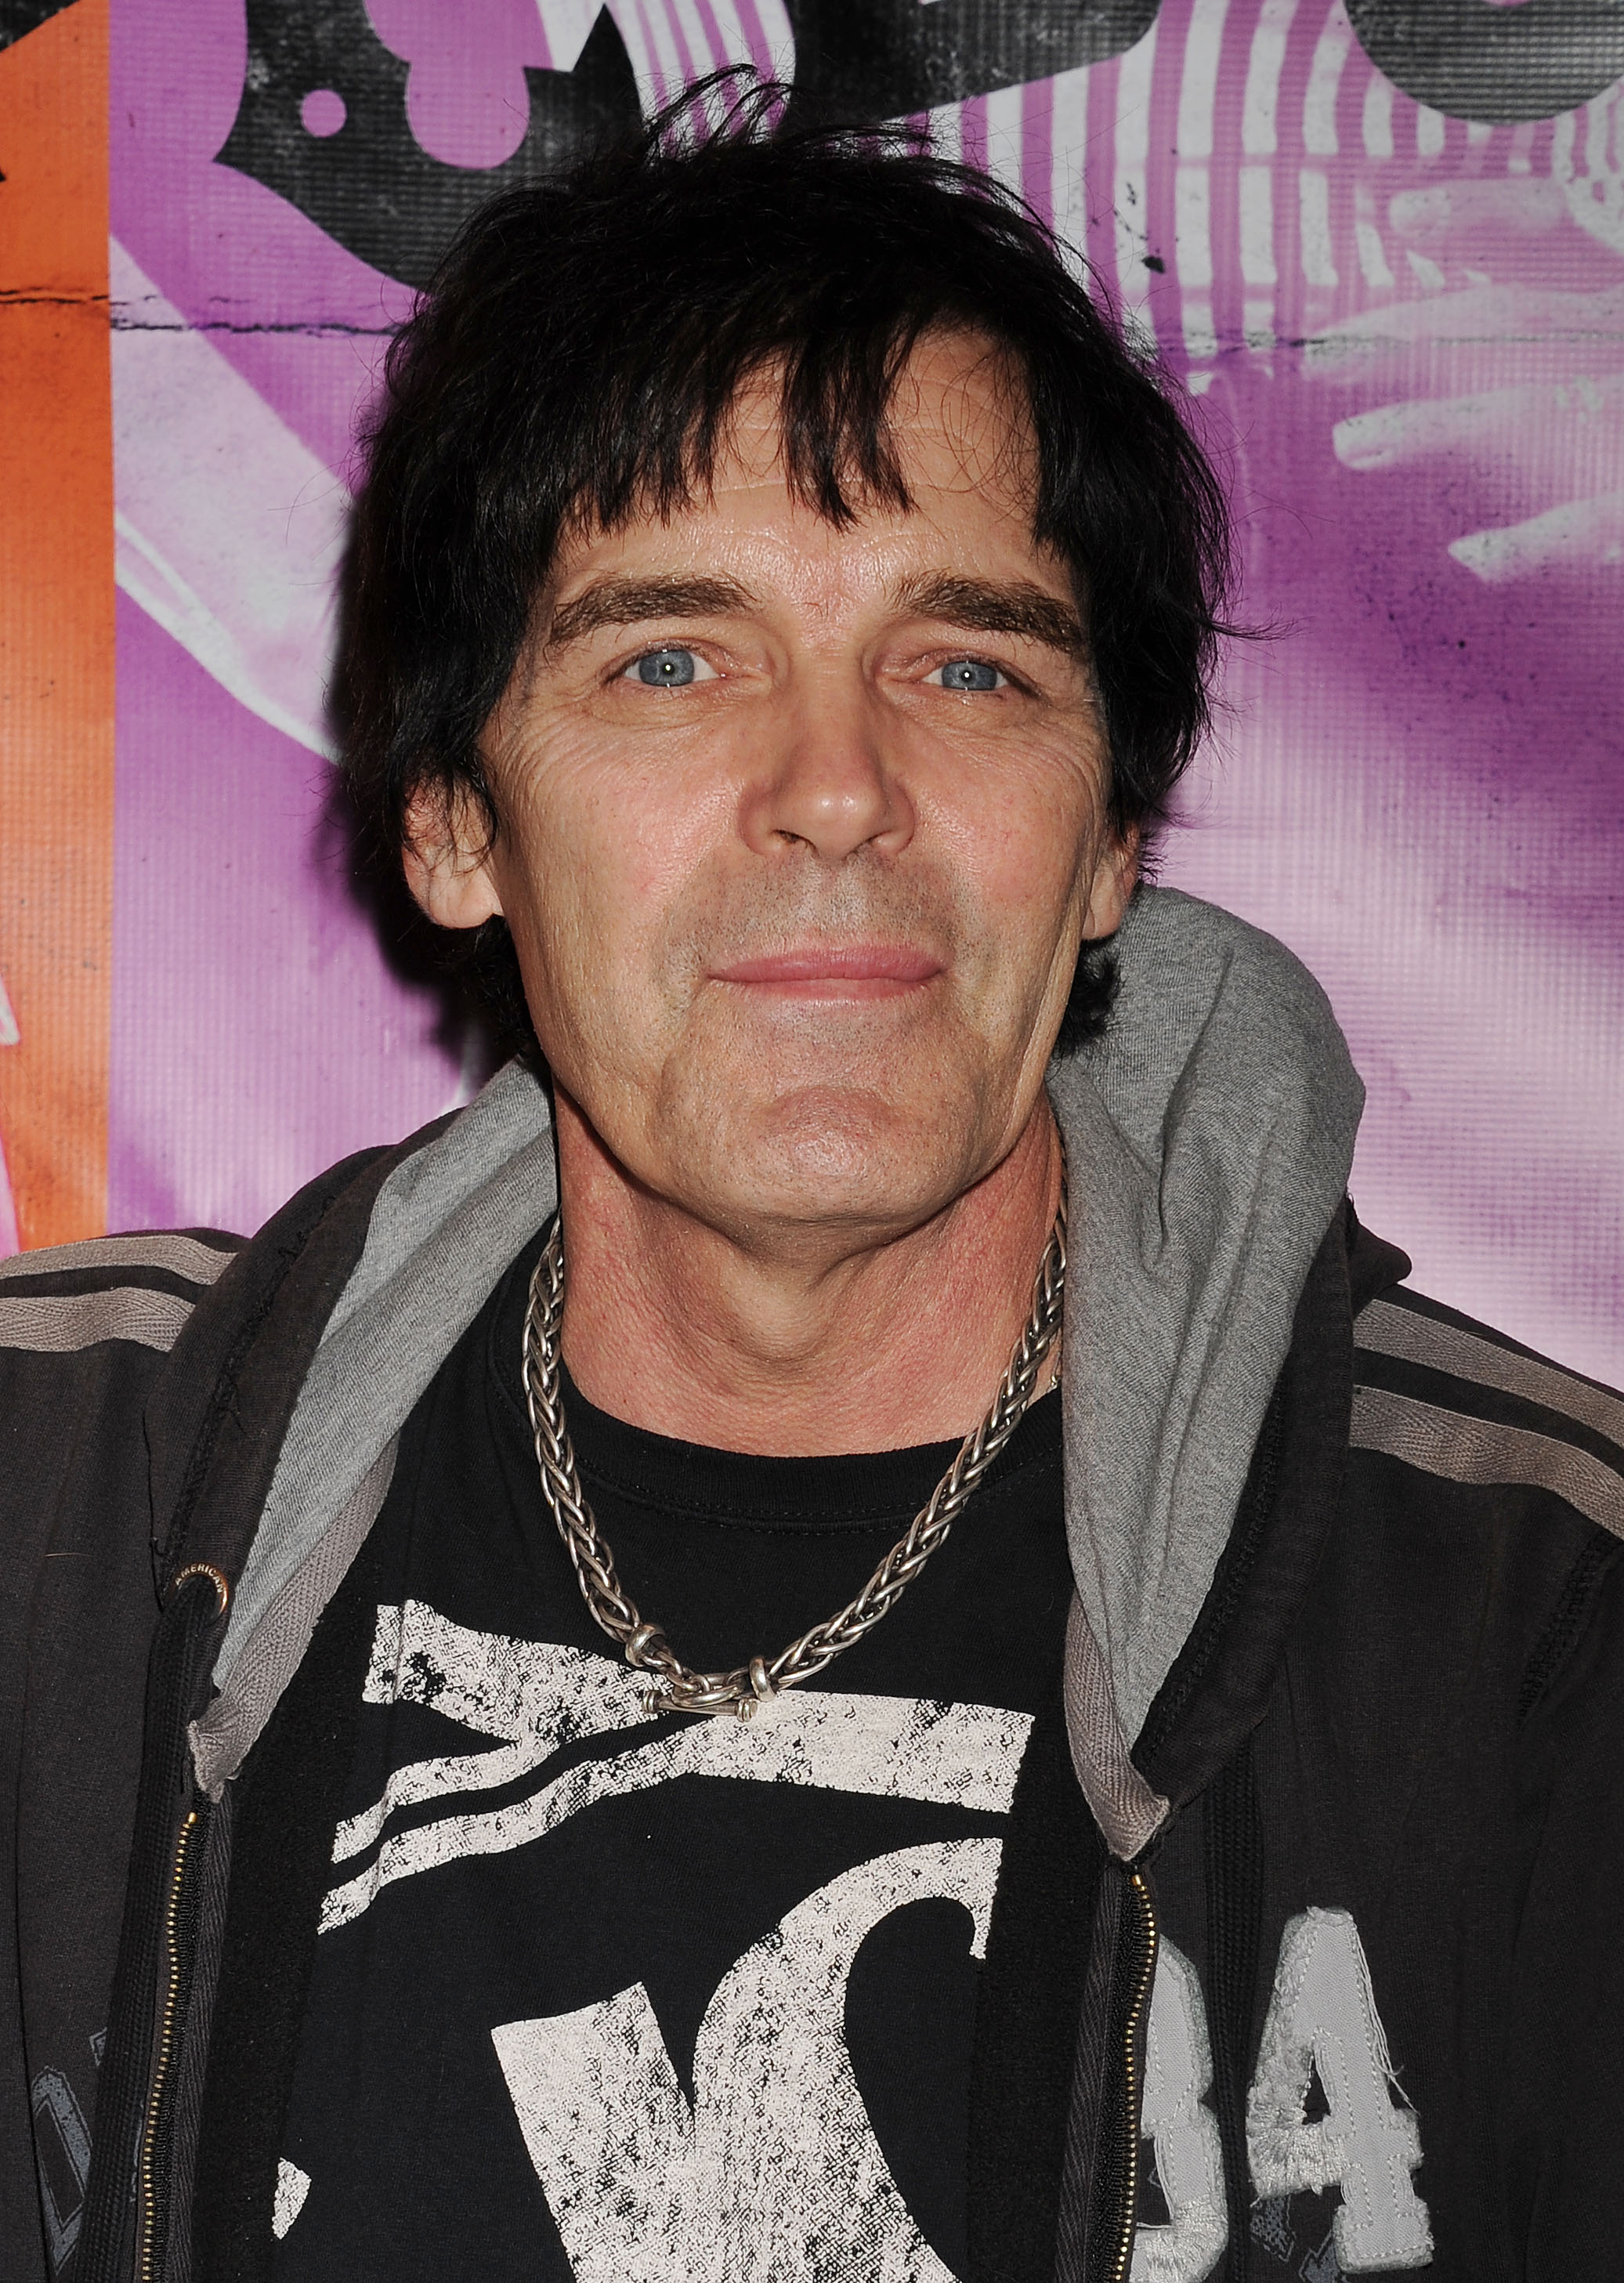 Ramones drummer Richie Ramone at a screening in Hollywood, California  on October 1, 2013 .